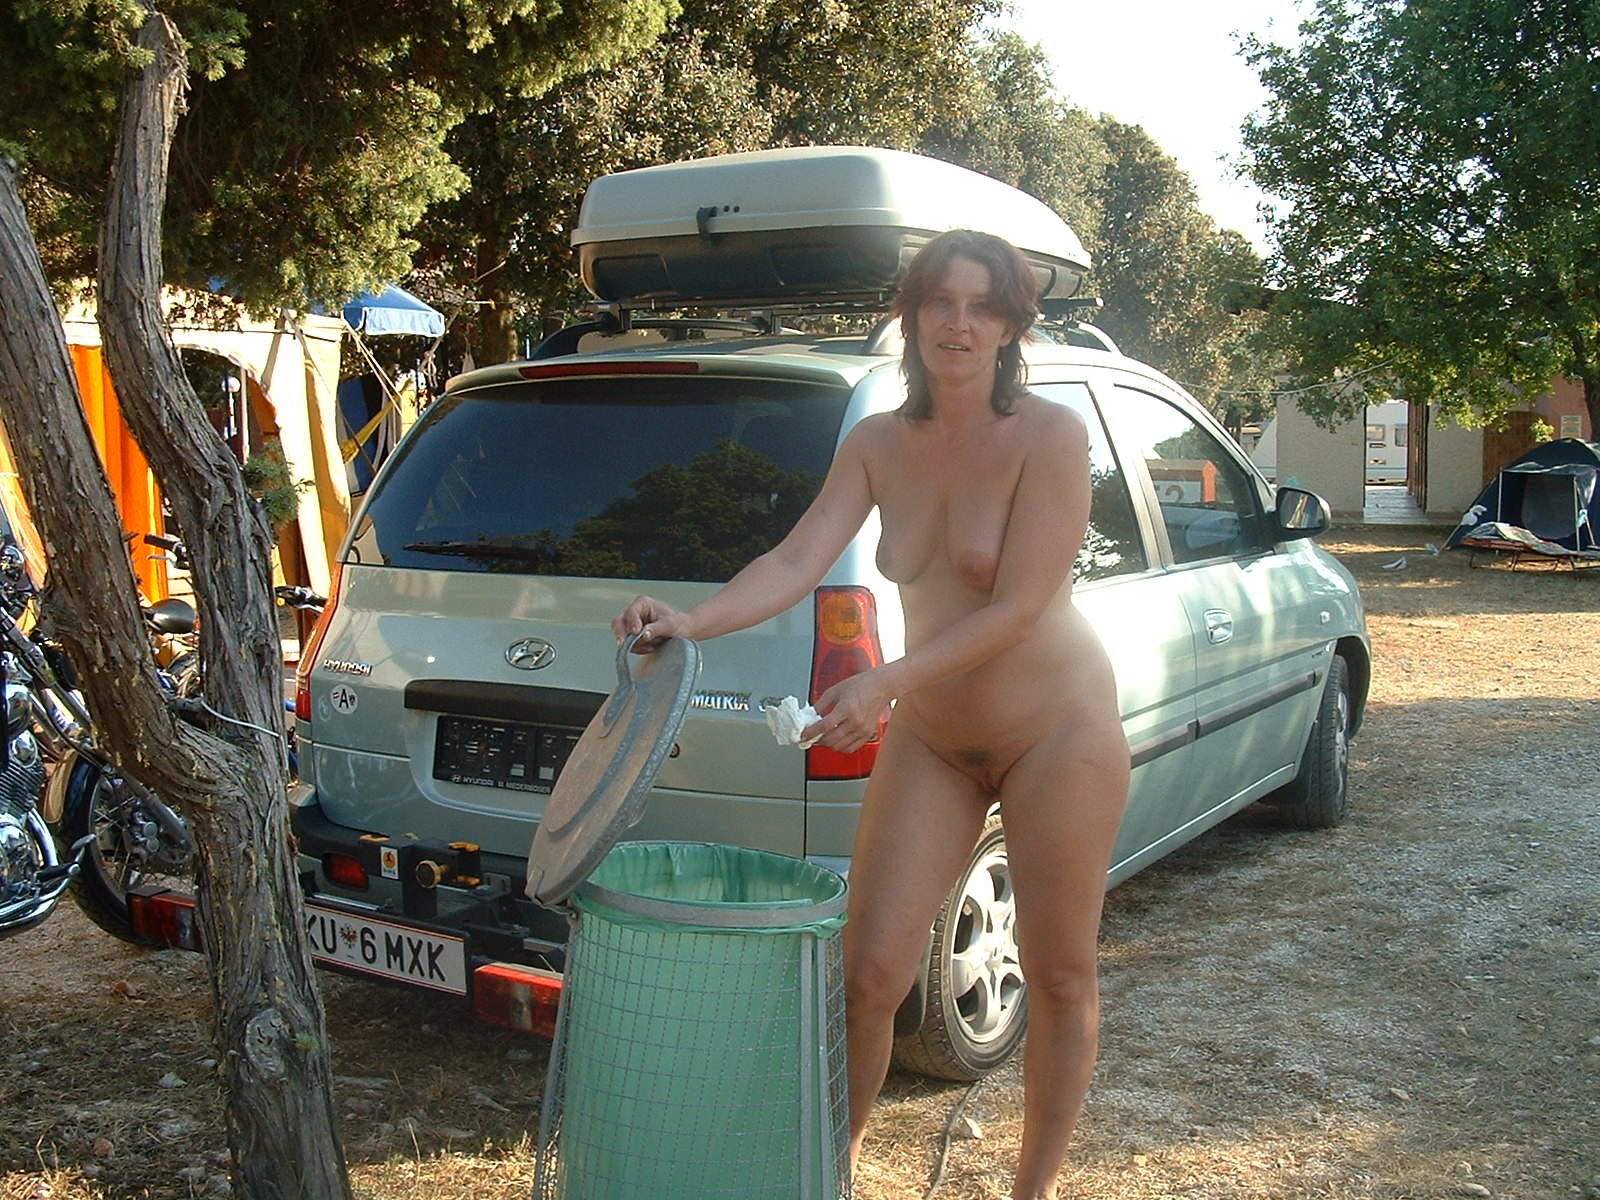 Camp nude Nudist